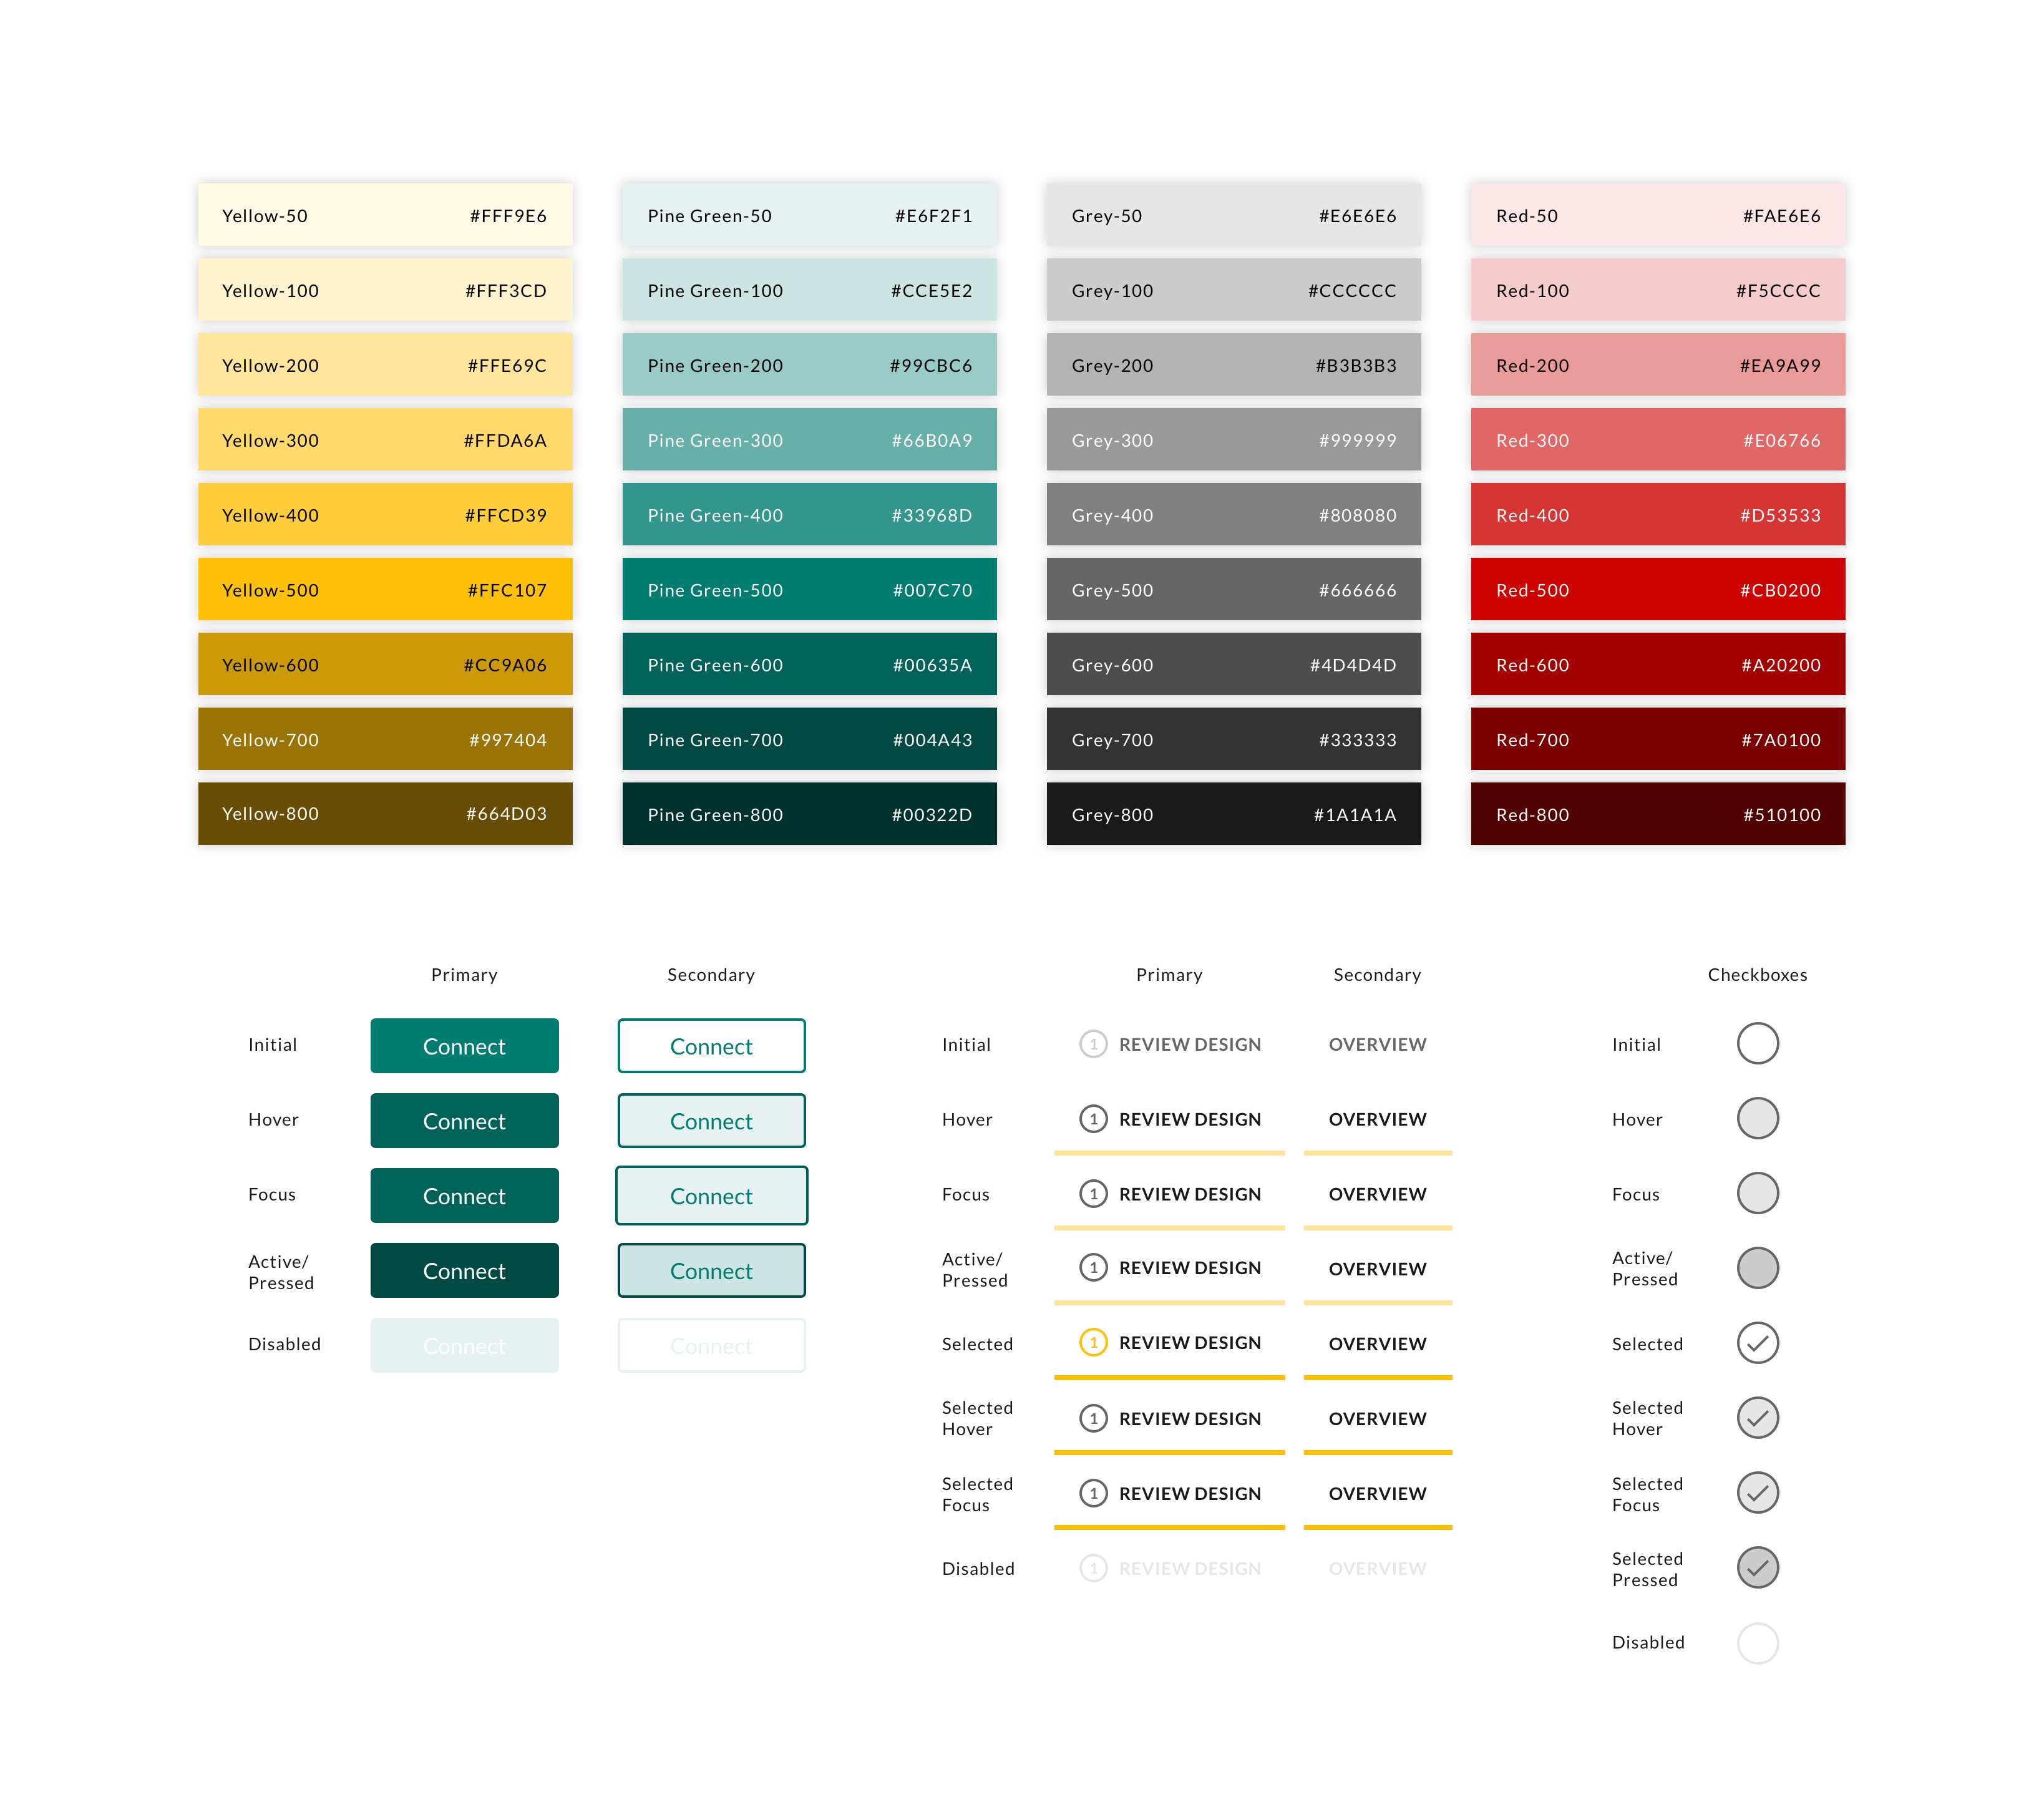 A series of color swatches used in the BrainWaves application, followed by button states (initial, hover, focus, active, disabled), navigation states, and checkboxes states.